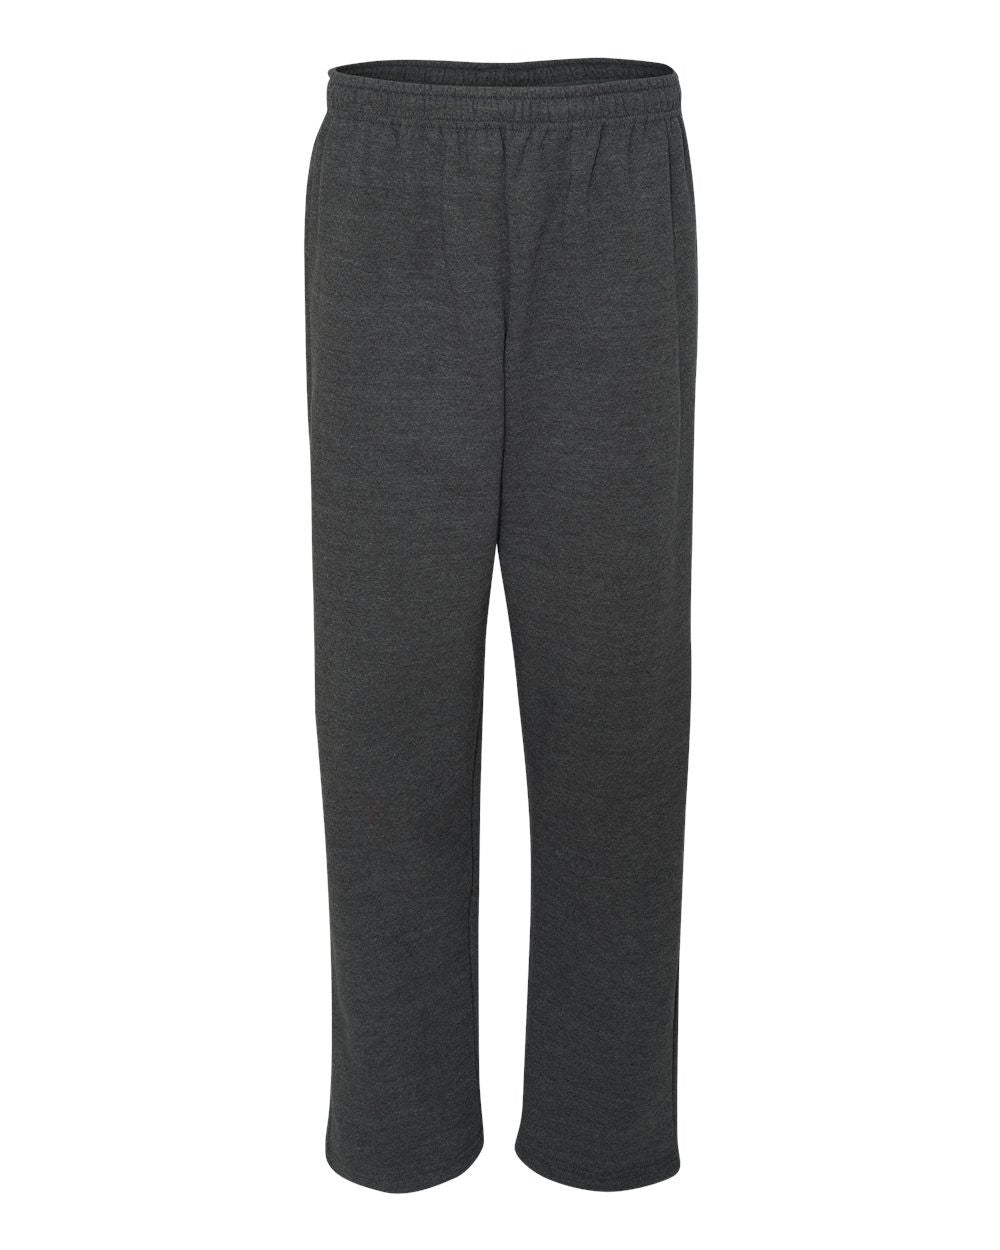 Heavy Sweatpants with open bottom by Gildan